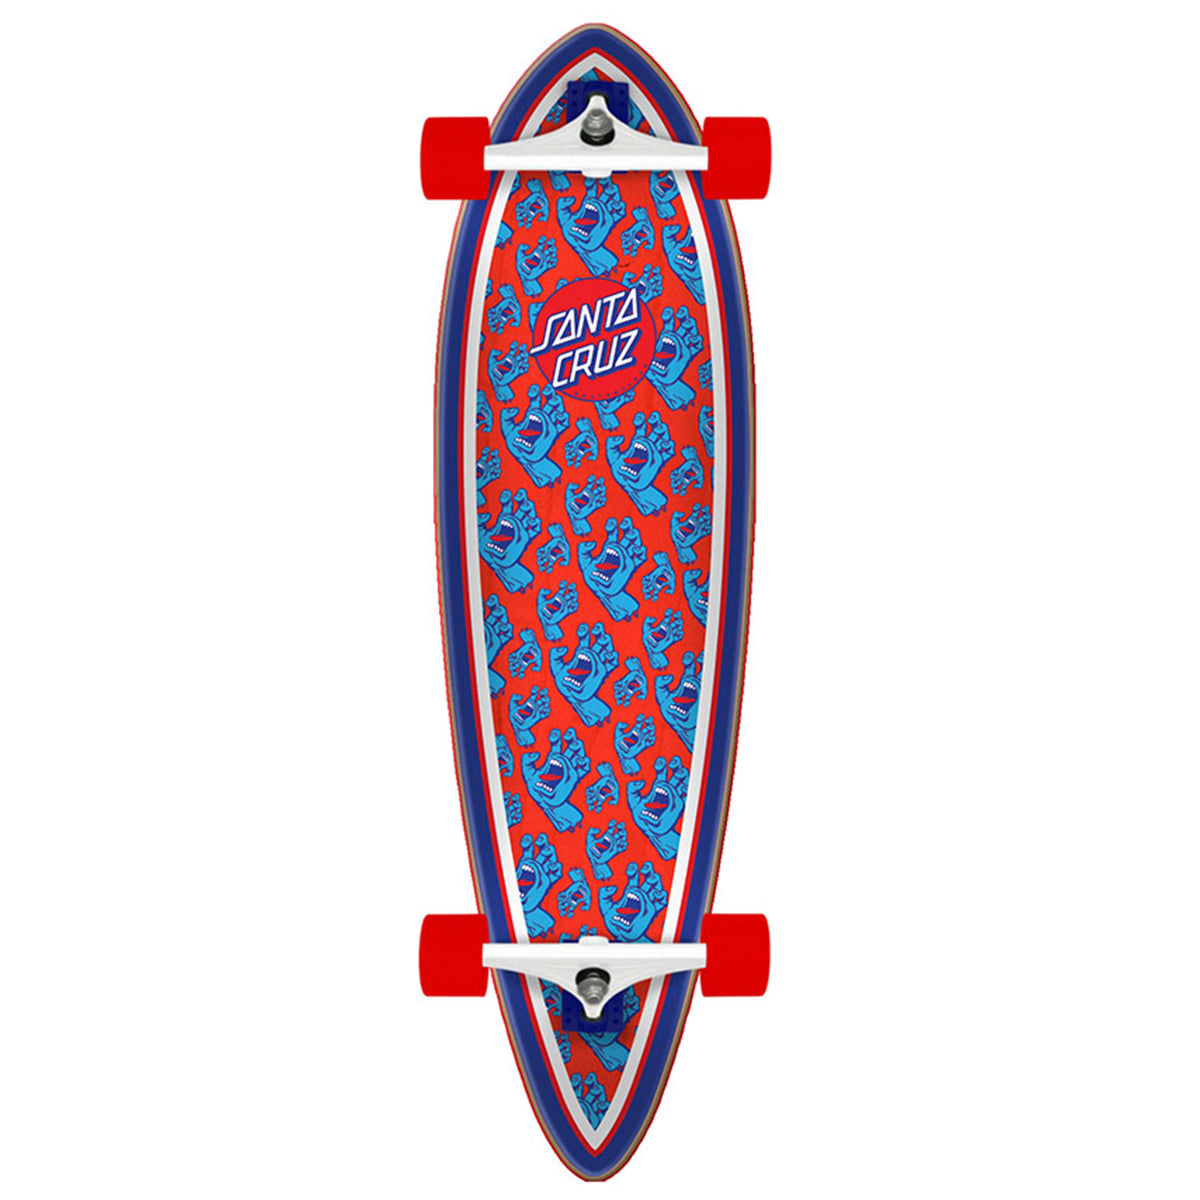 Santa Cruz Crusier - Hands Allover Pintail | Underground Skate Shop